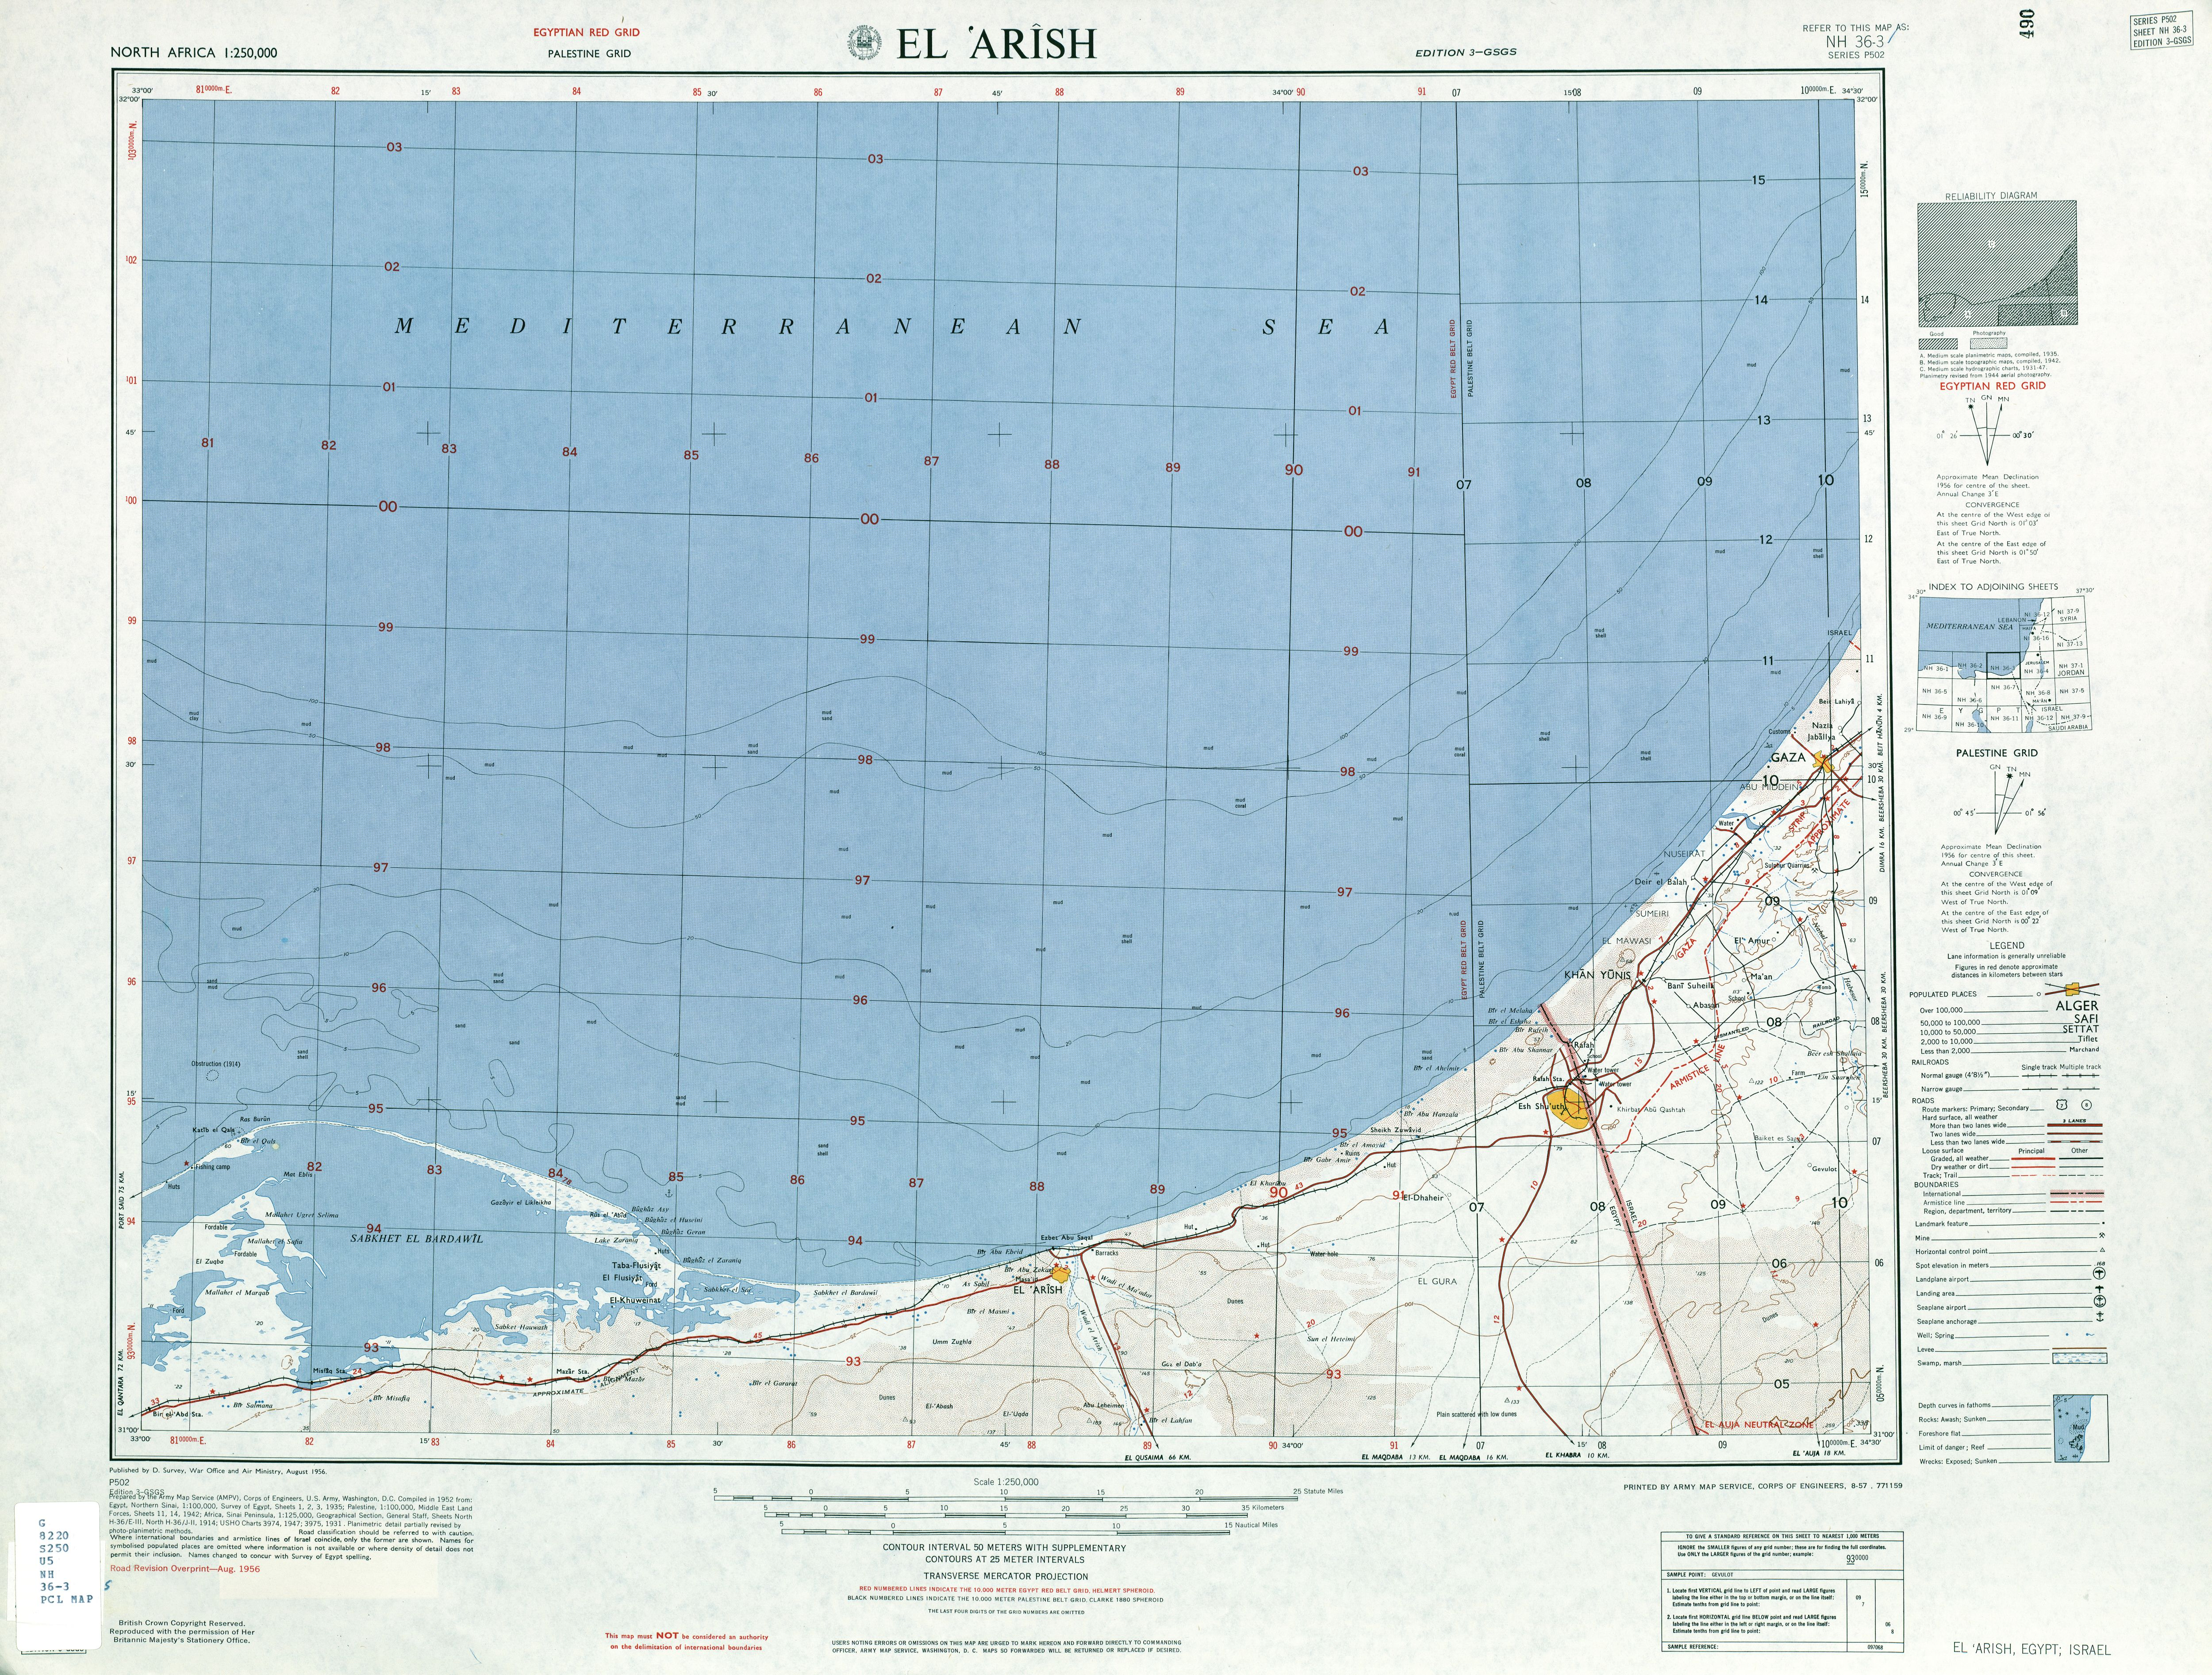 Digital Map of Egypt: Topographic map of Egypt